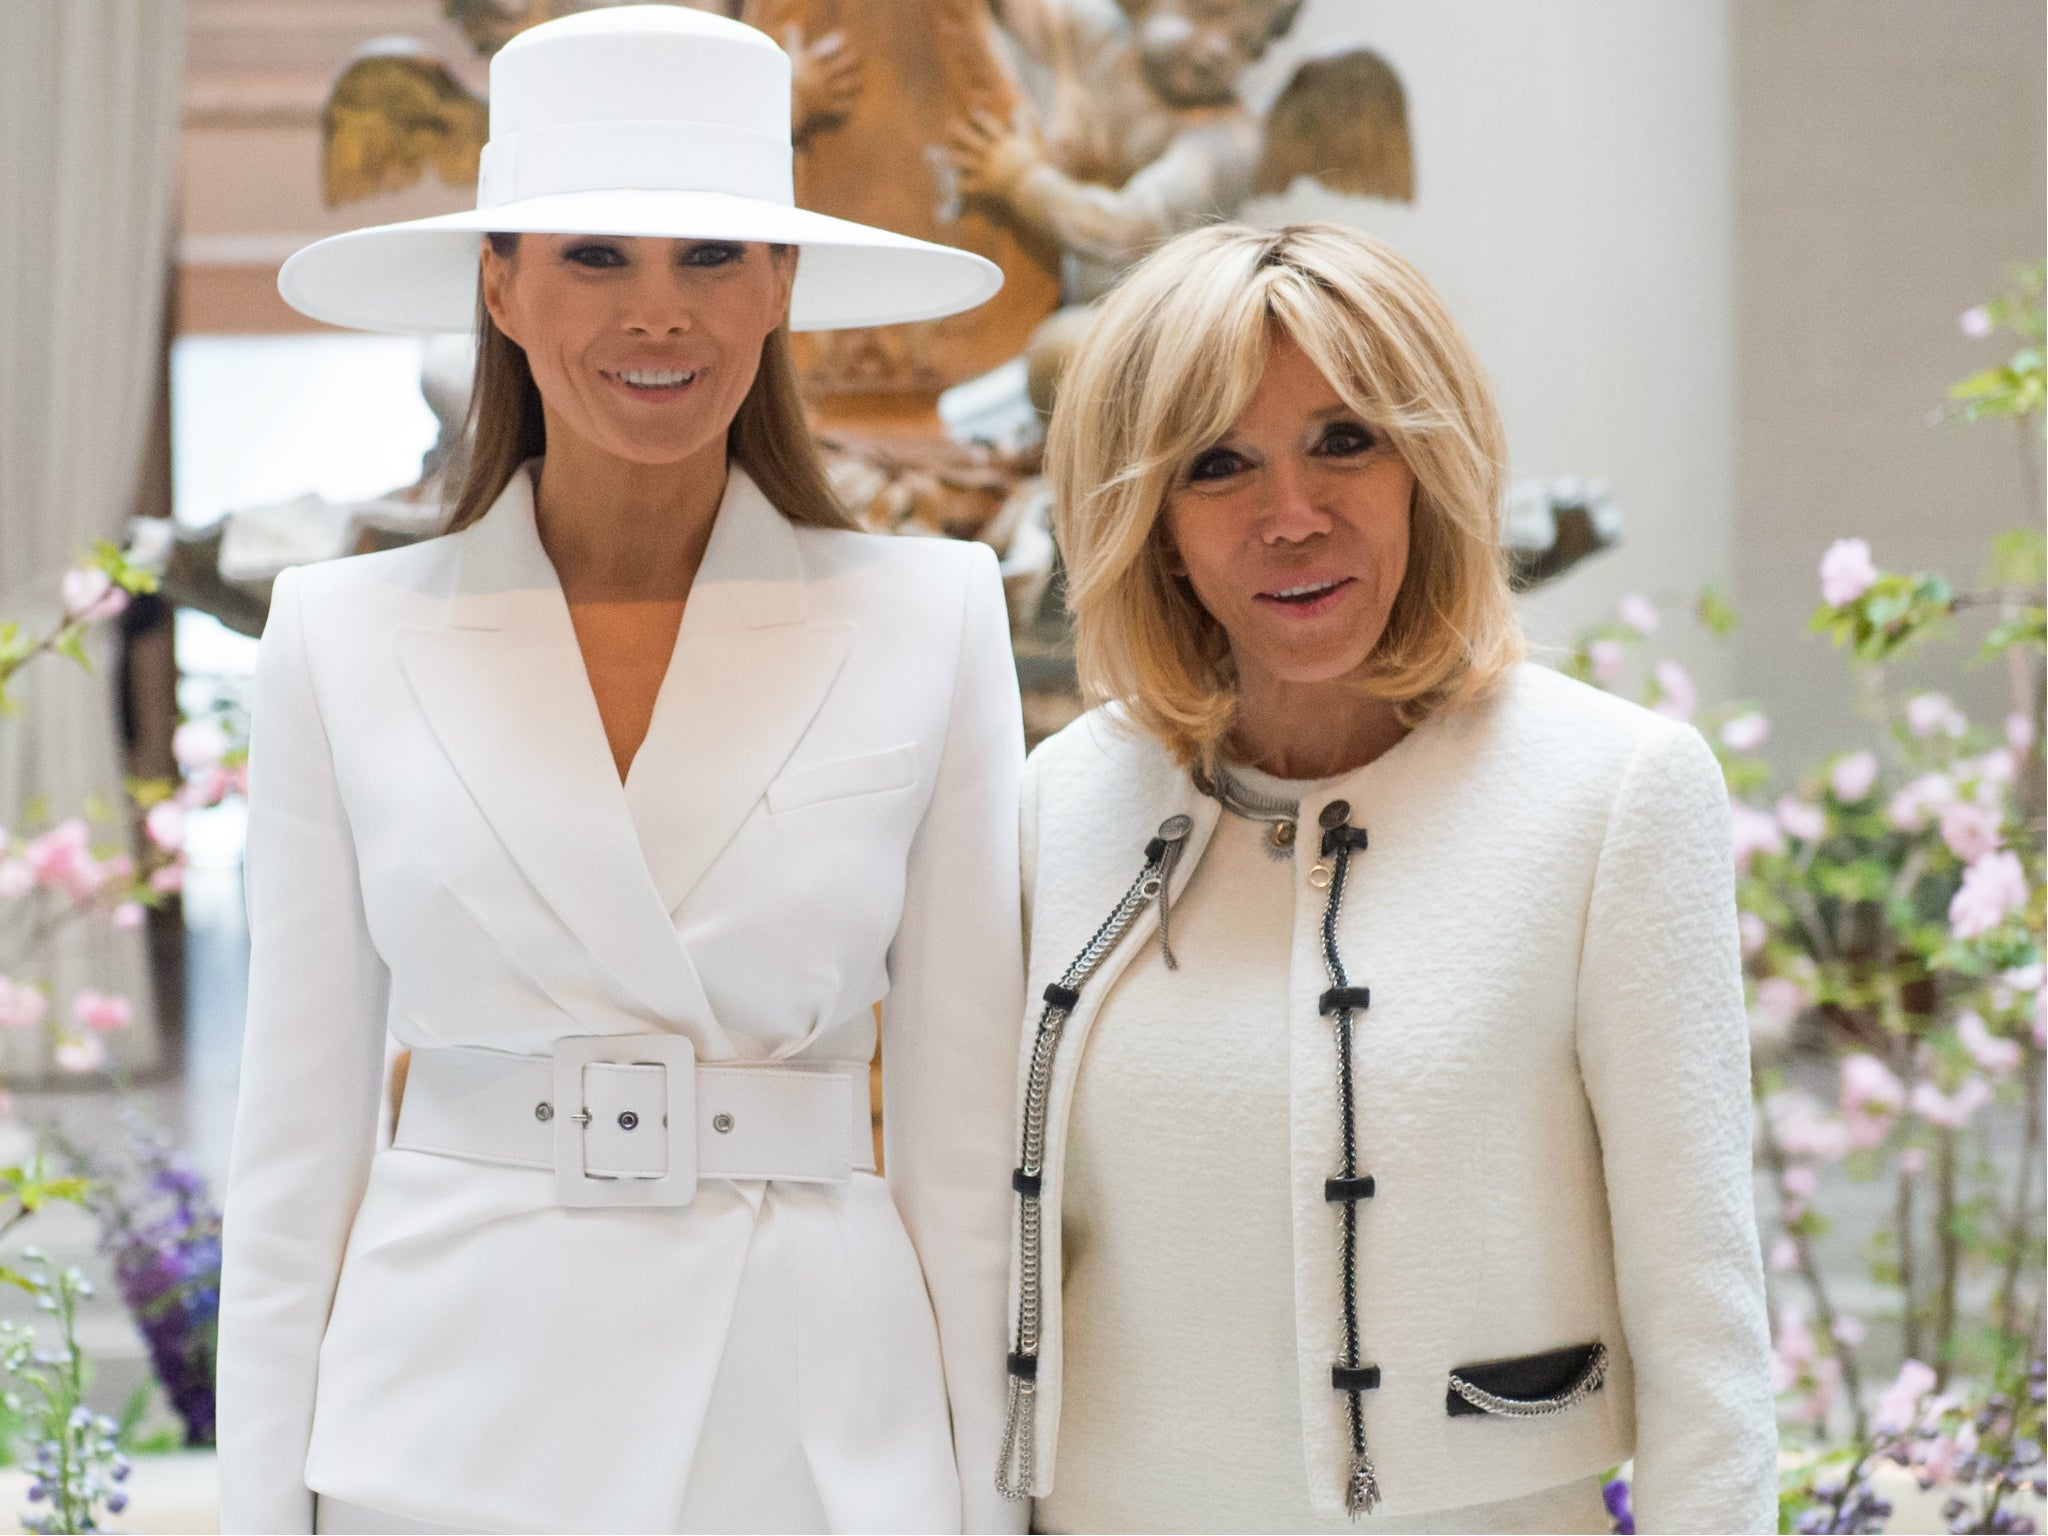 Brigitte Macron Says Melania Trump Is Really Fun But Can T Even Go Outside The Independent The Independent